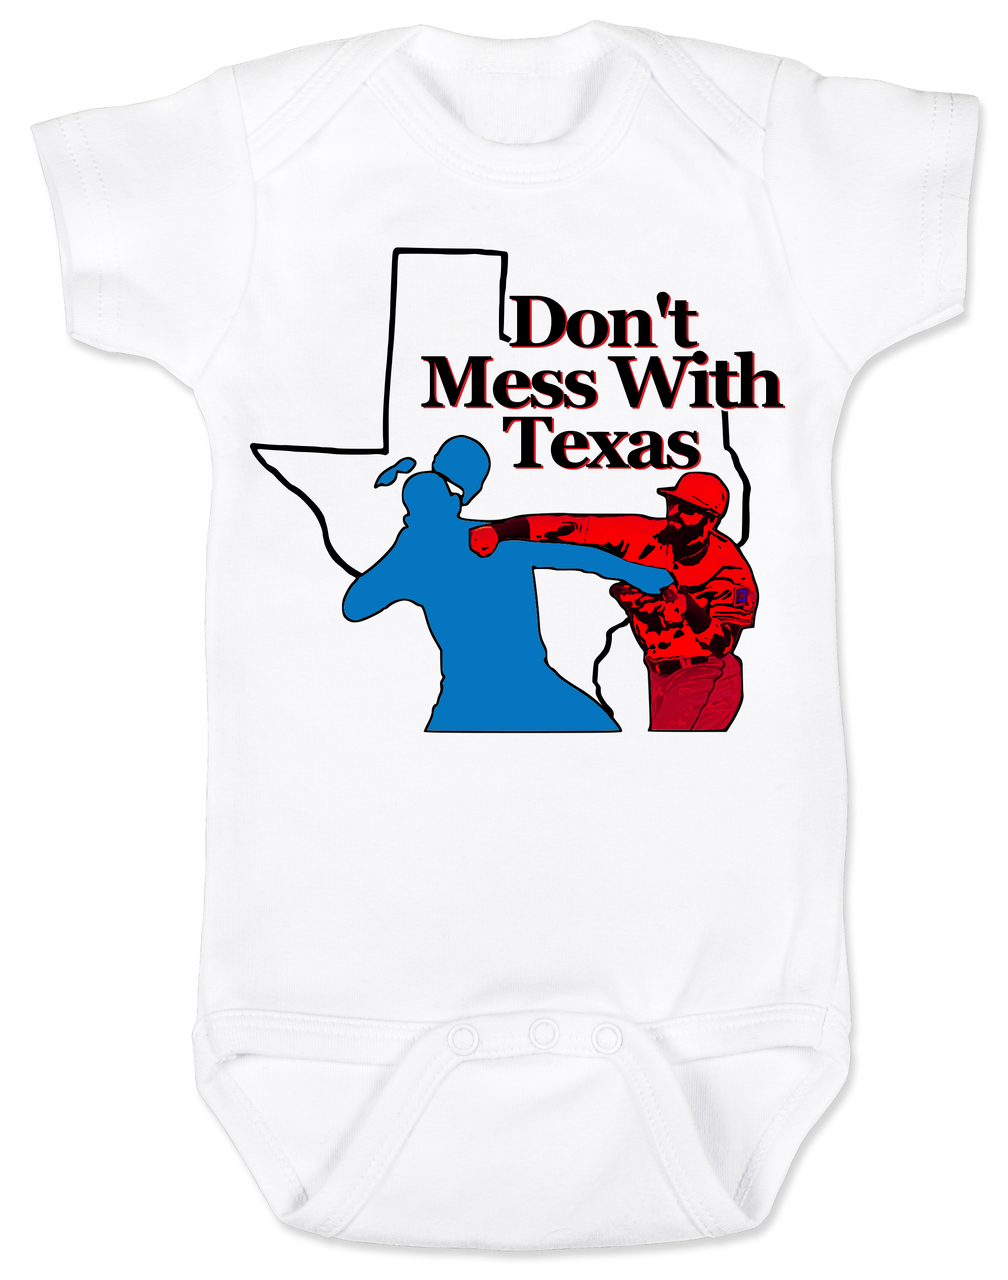 6ee5f98c4 Don't Mess With Texas Baby Bodysuit